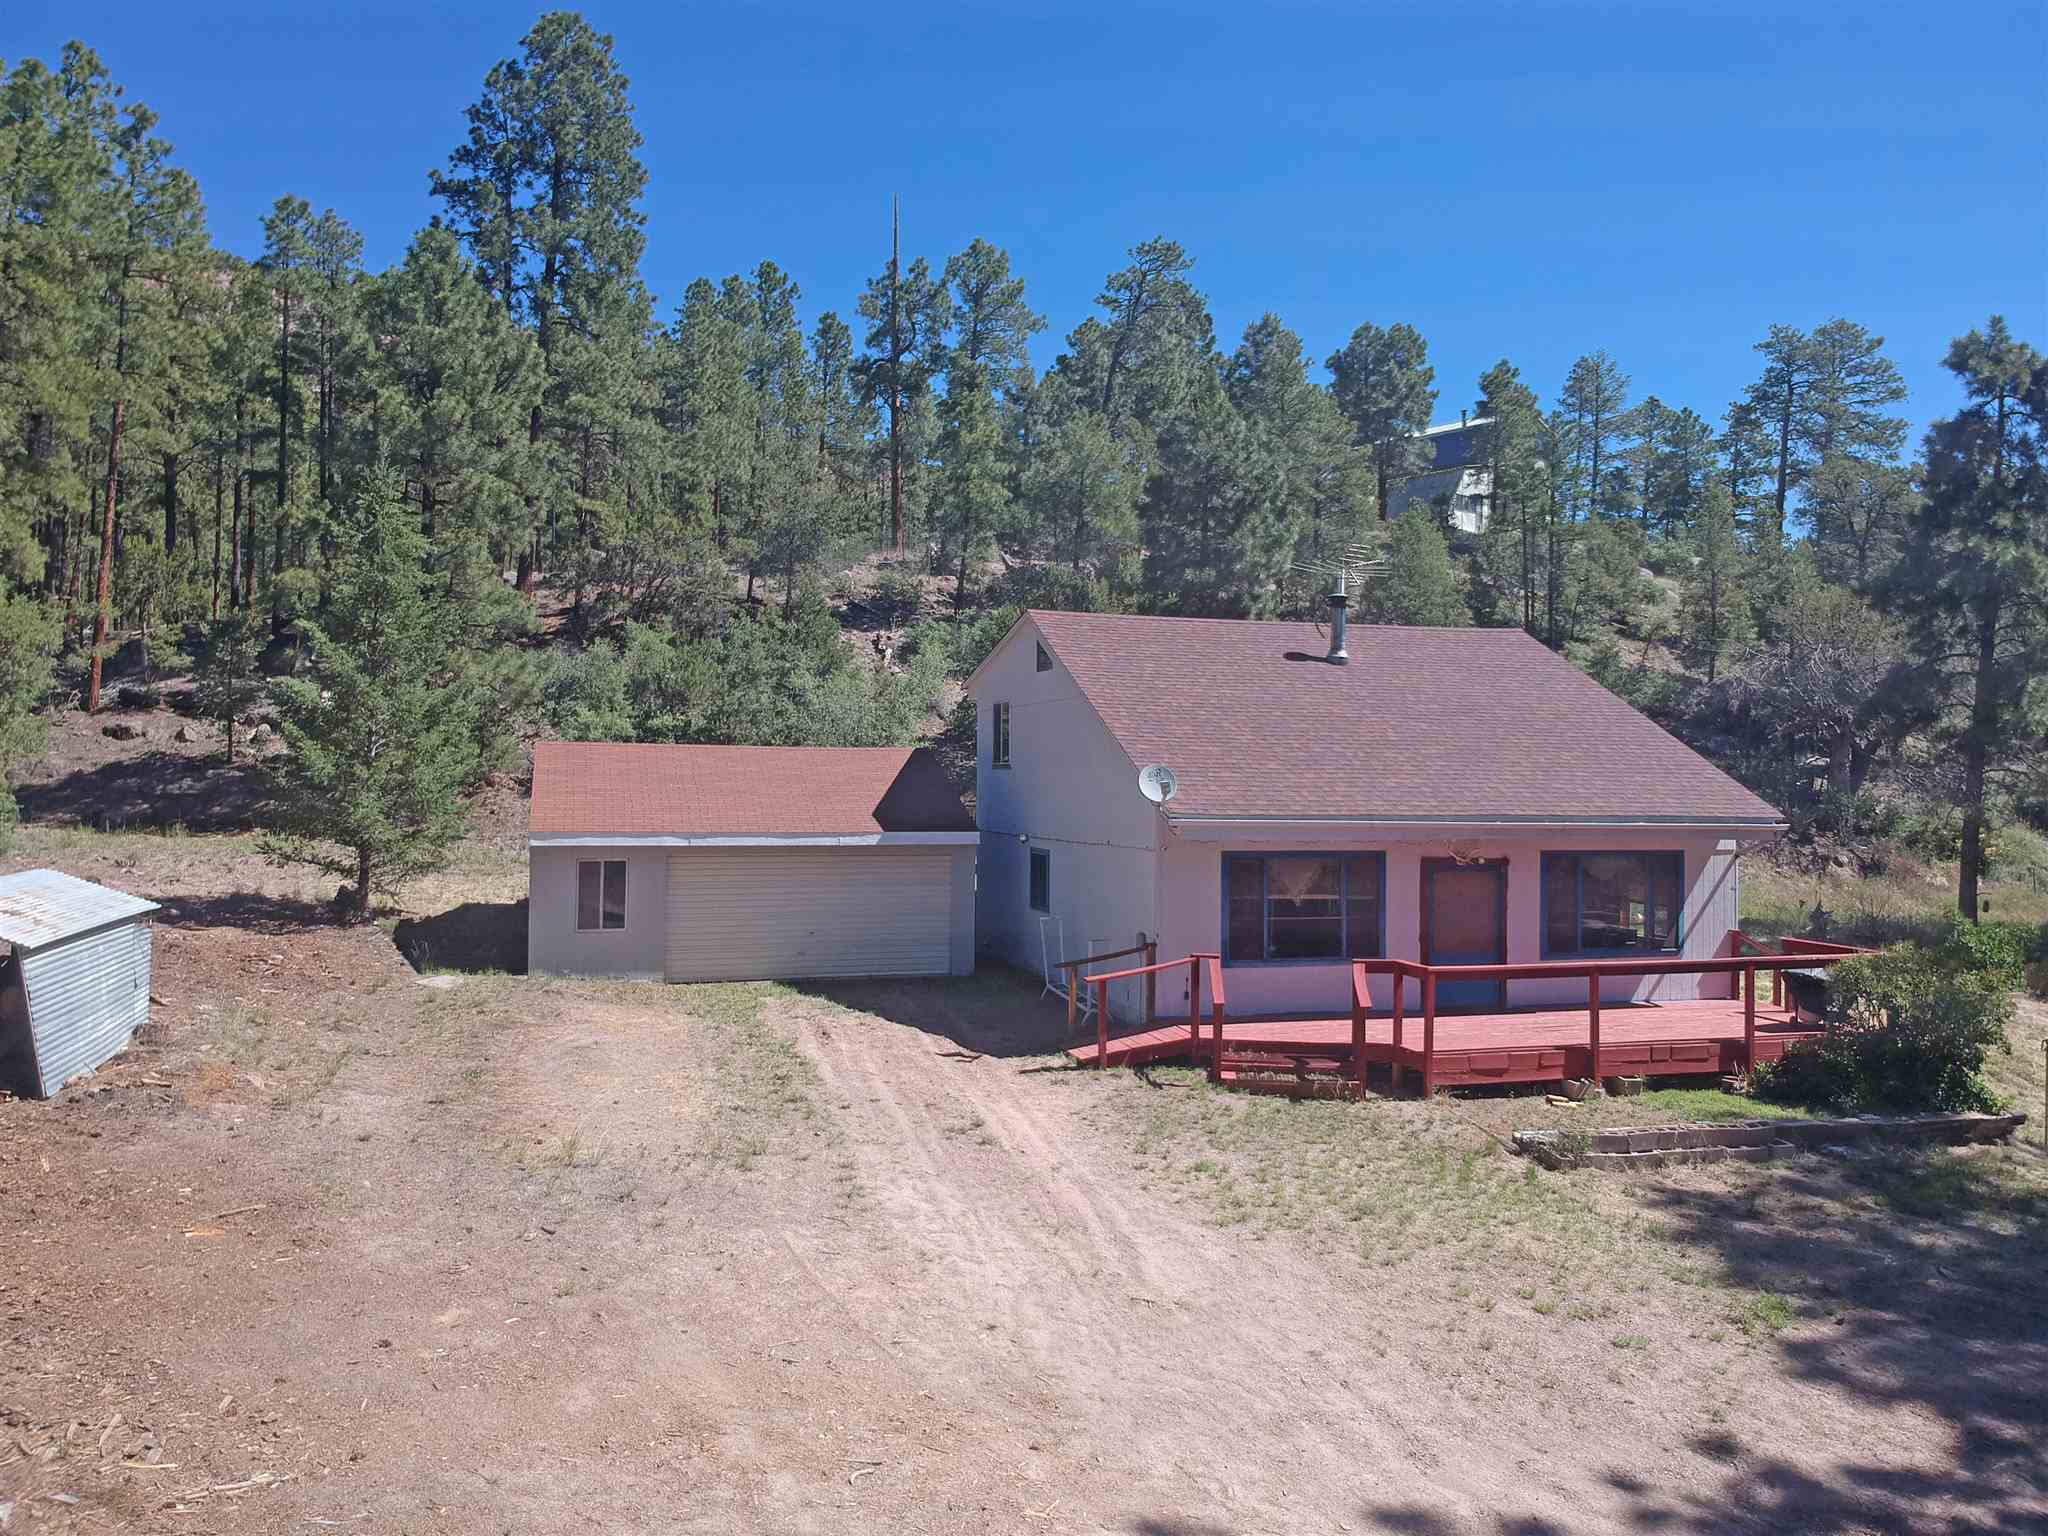 Move up to the Cool Pines subdivision into this home that is ready for you to add in some of your own creative finishing touches. This three-bedroom, two full bath 1,436 sq foot home sits on a 1-acre lot with a garage and plenty of room to spread out or plant a garden. Open concept living room, dining and kitchen area with a centrally located woodstove to cozy up to in the winter months. The living area has a lovely knotty pine ceiling and  laminate wood flooring that makes you instantly feel at home.  The remainder of the home is ready for you to install the flooring of your choice. This property is loaded with potential, and ready for a buyer to come in and make it their own!